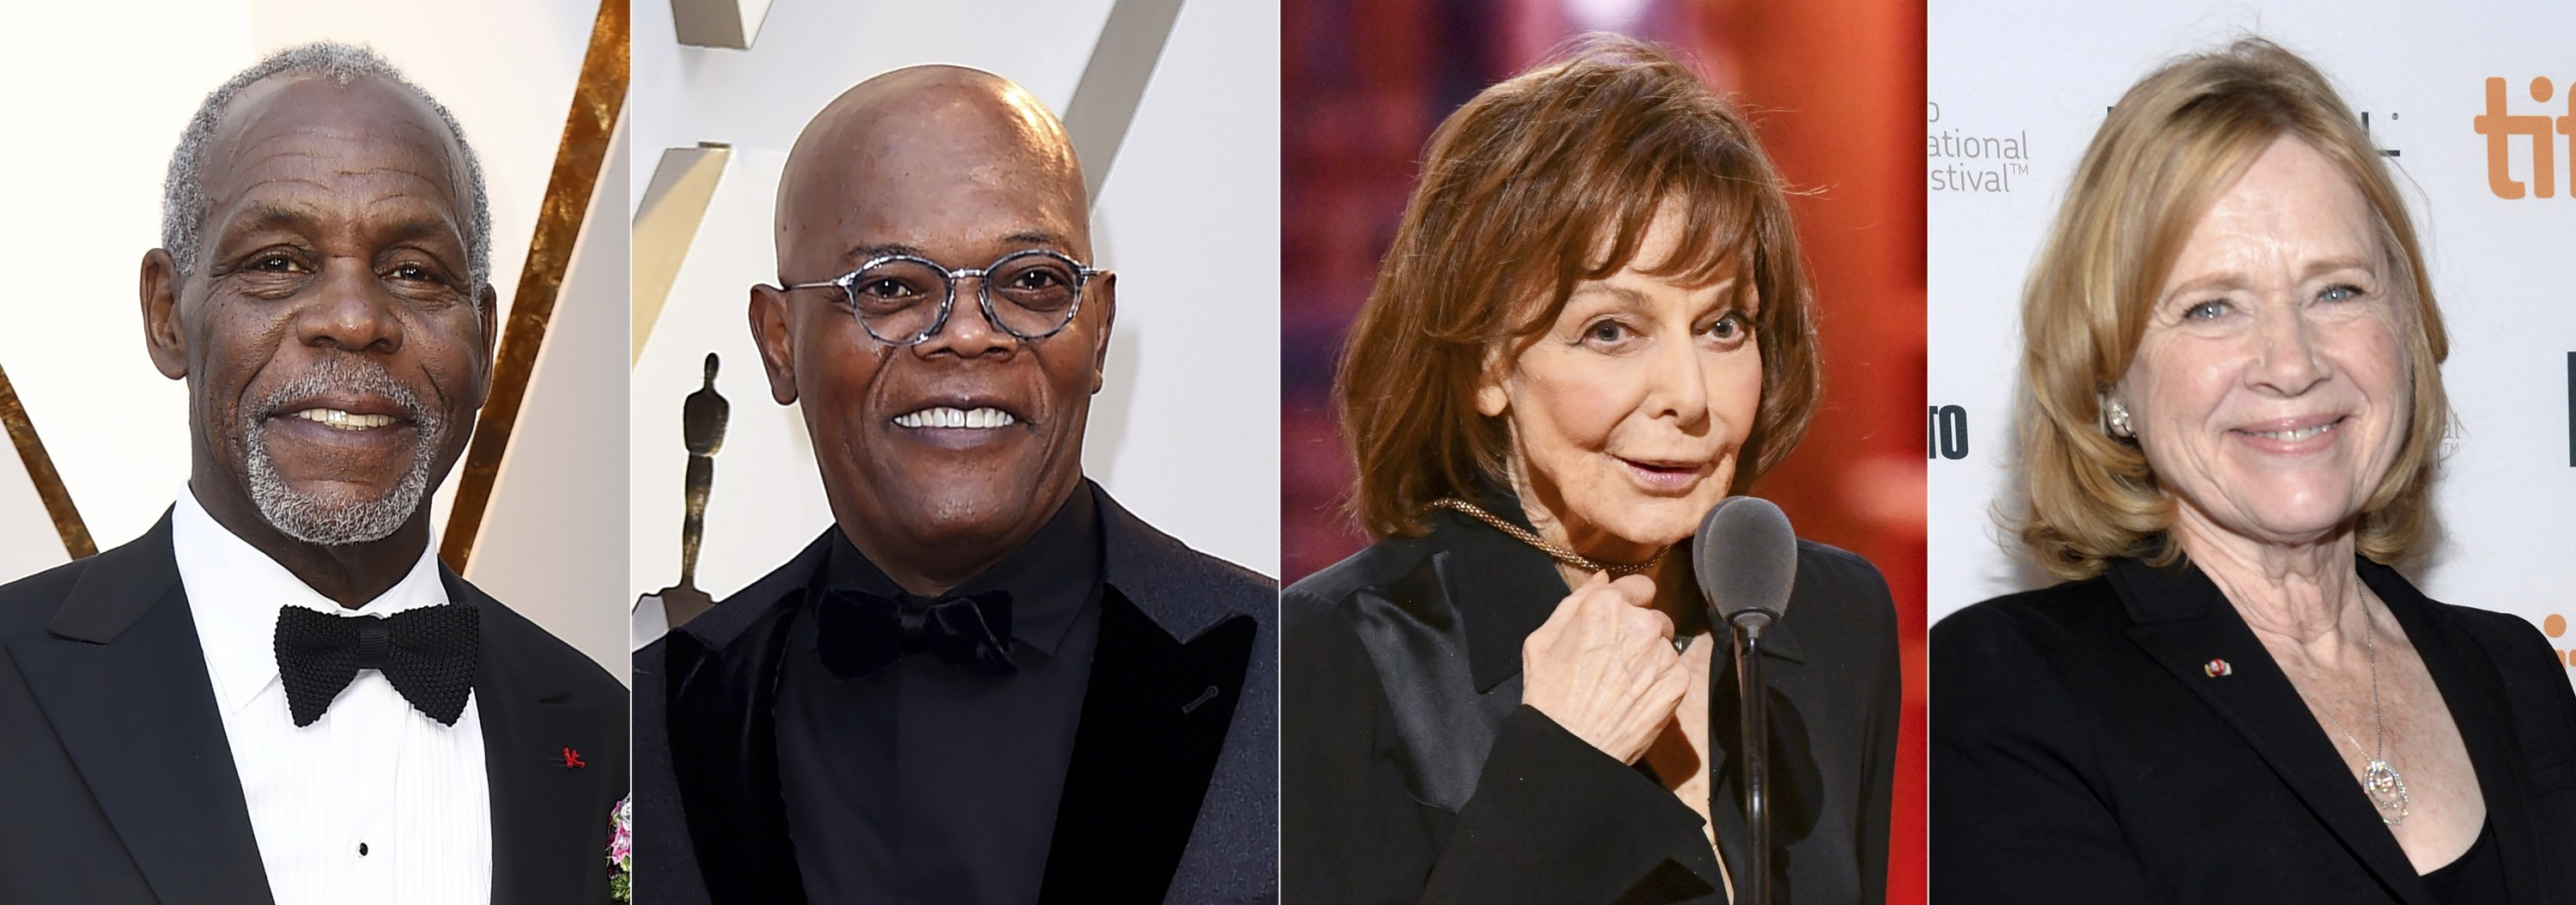 This combination of photos (L to R) shows Danny Glover, Samuel L. Jackson, Elaine May and Liv Ullmann, who will be honored at the 12th Governors Awards in January 2022. (AP Photo)